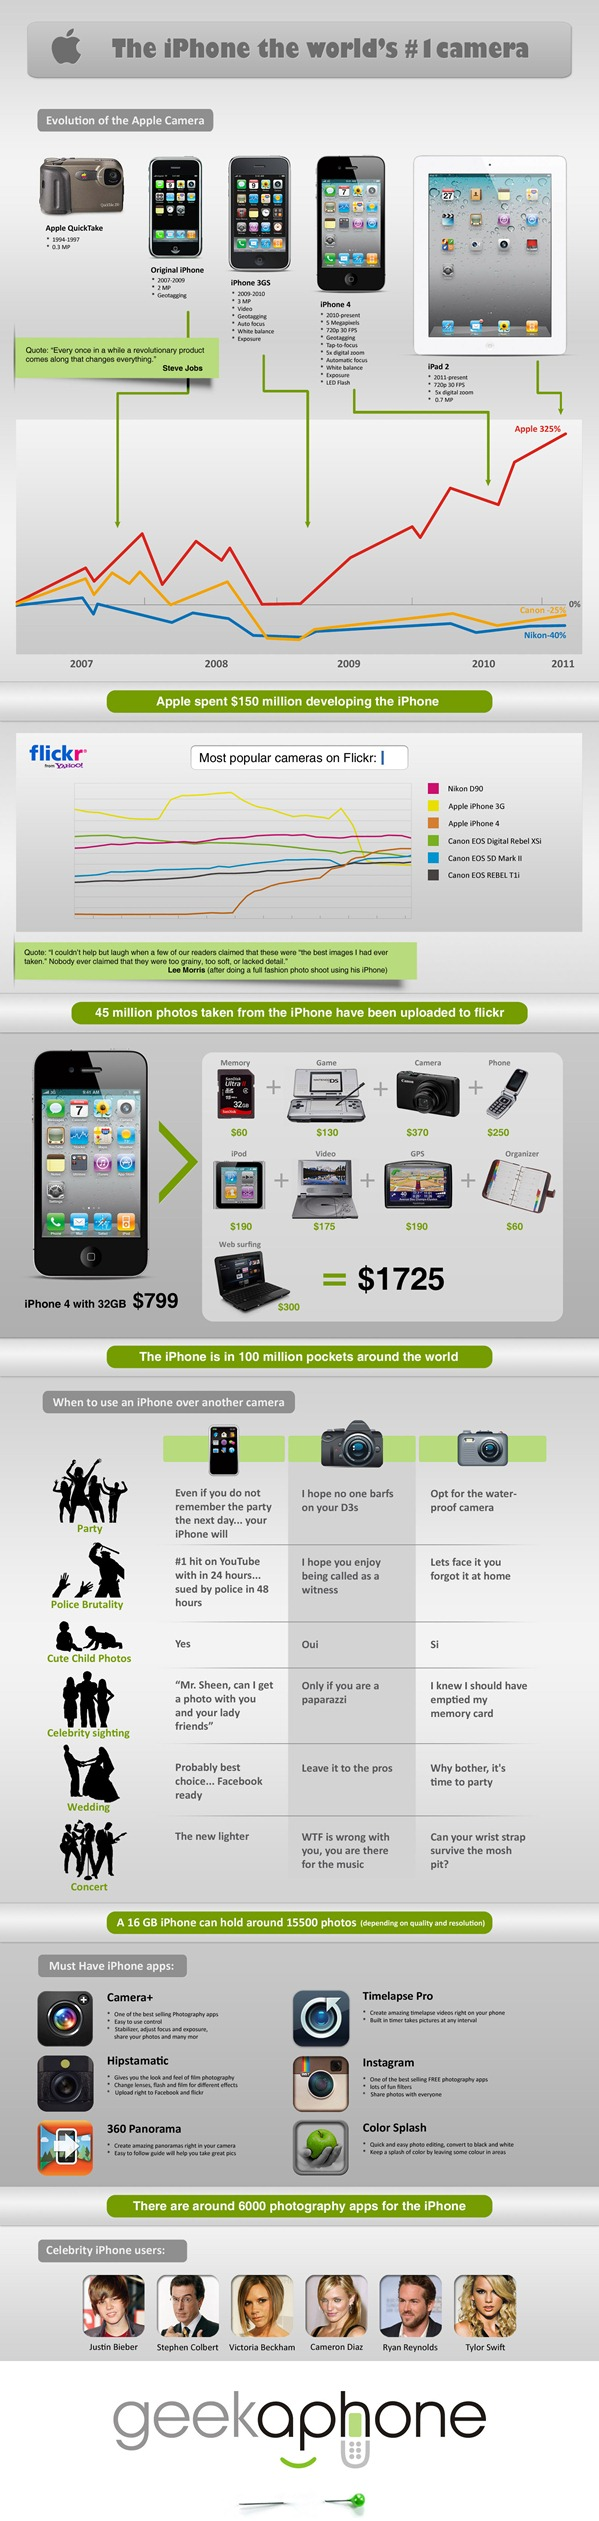 iPhone_Infographic_1600px